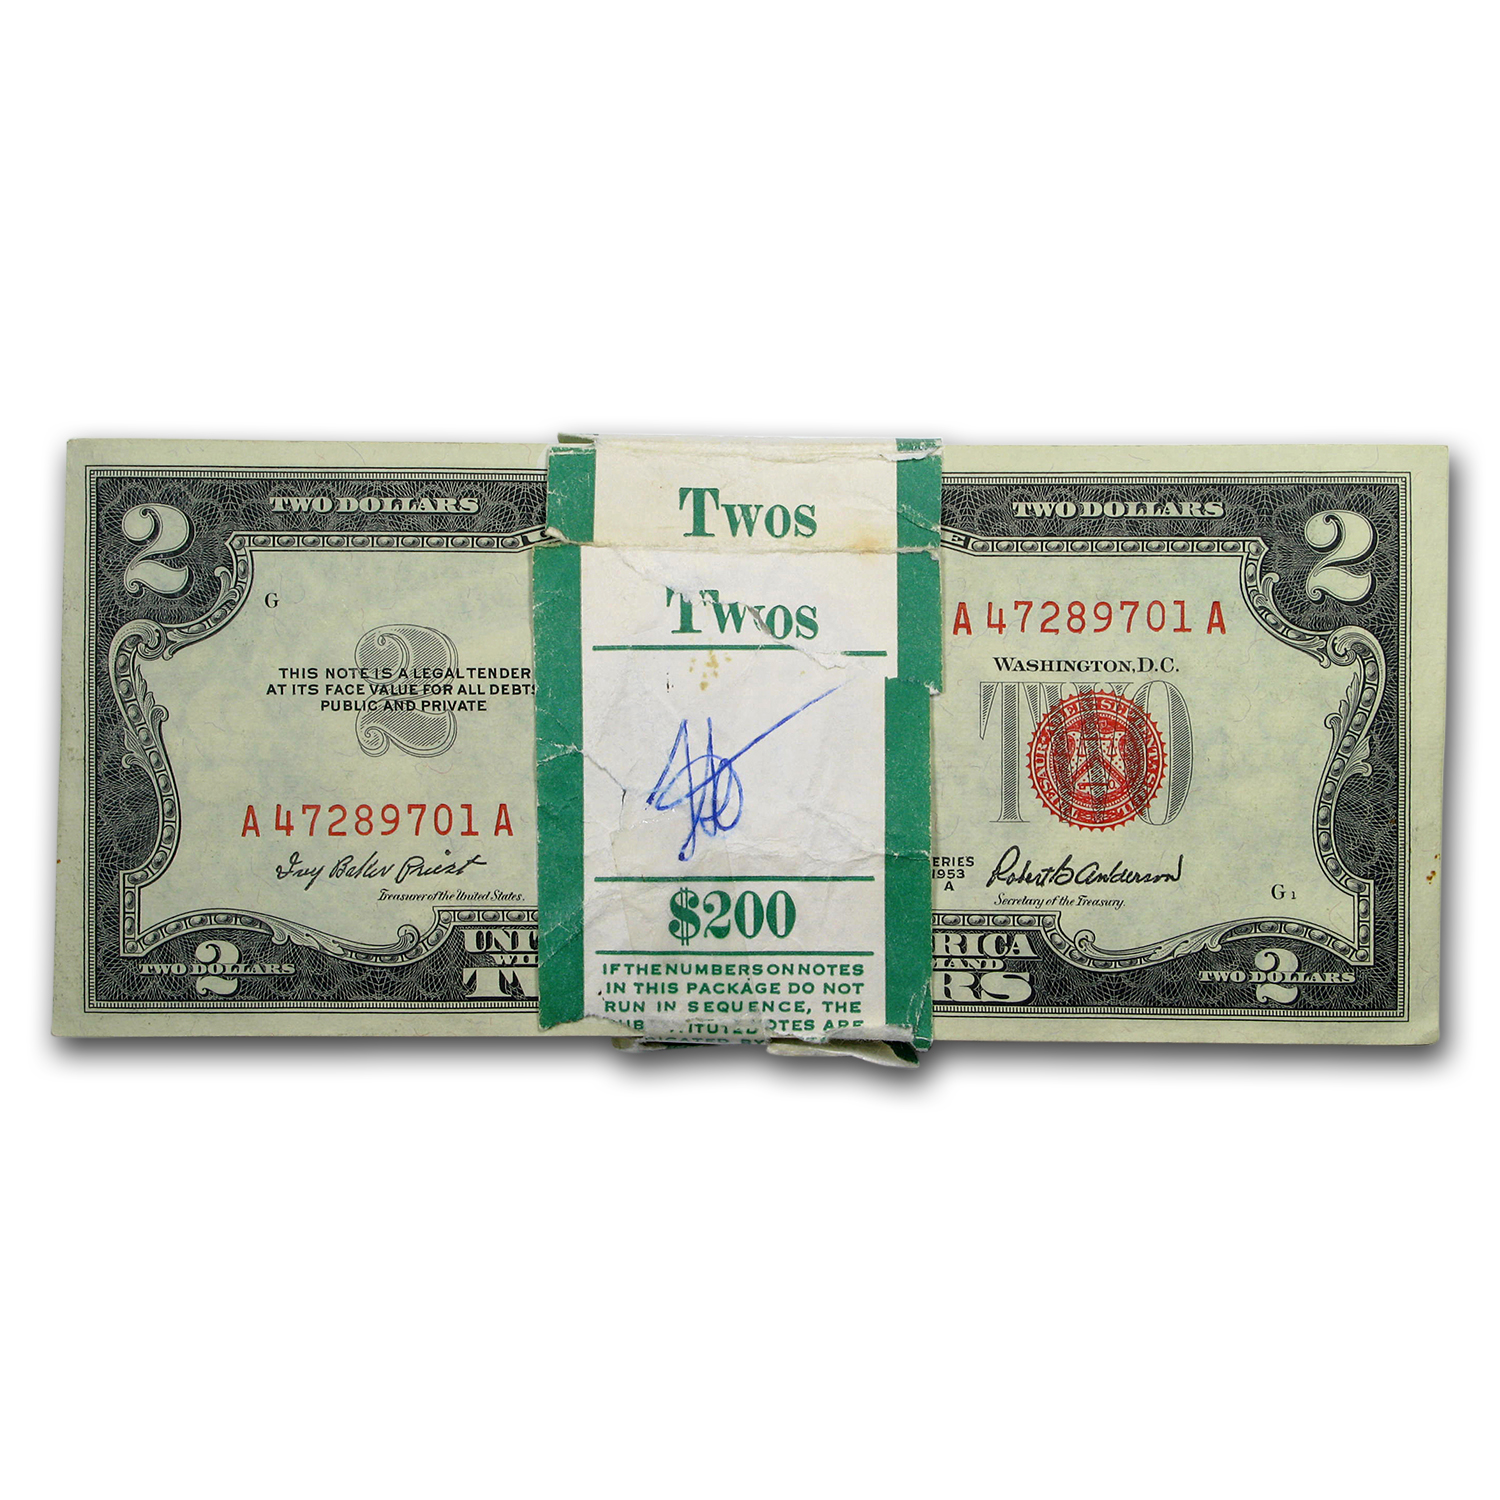 1953-A $2.00 U.S. Notes Red Seal CU (100 consecutive notes)